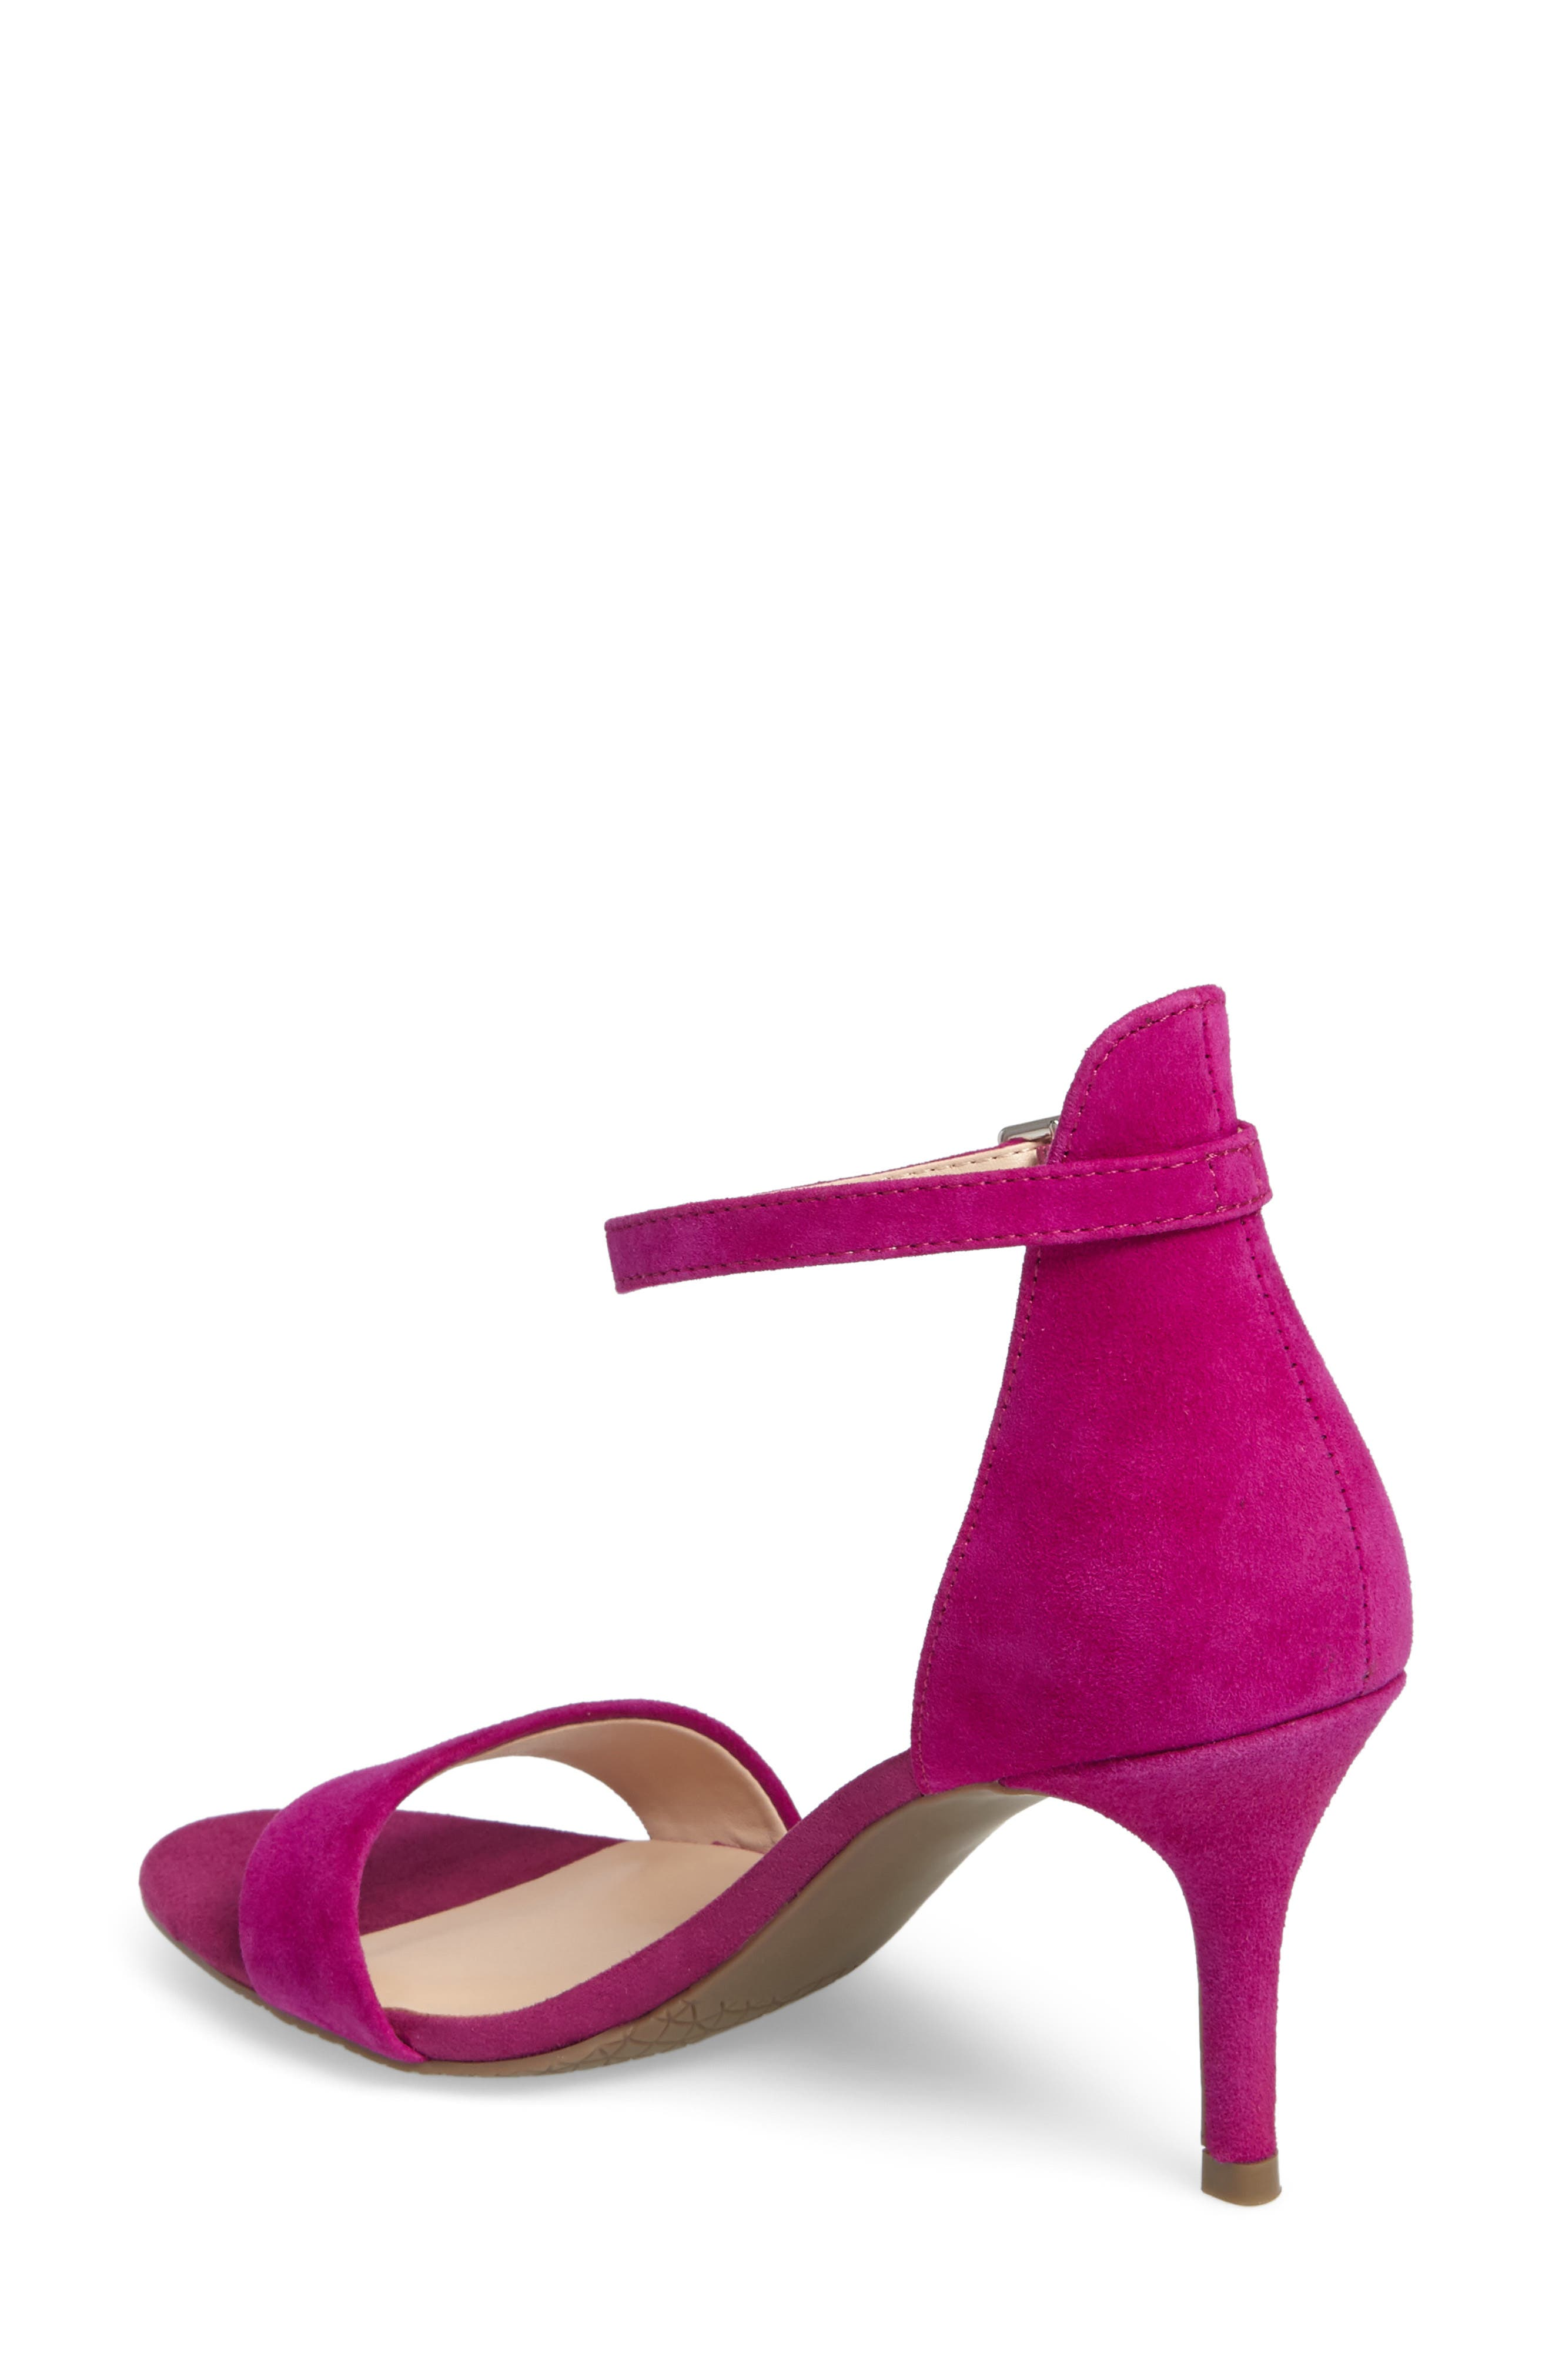 'Luminate' Open Toe Dress Sandal,                             Alternate thumbnail 89, color,